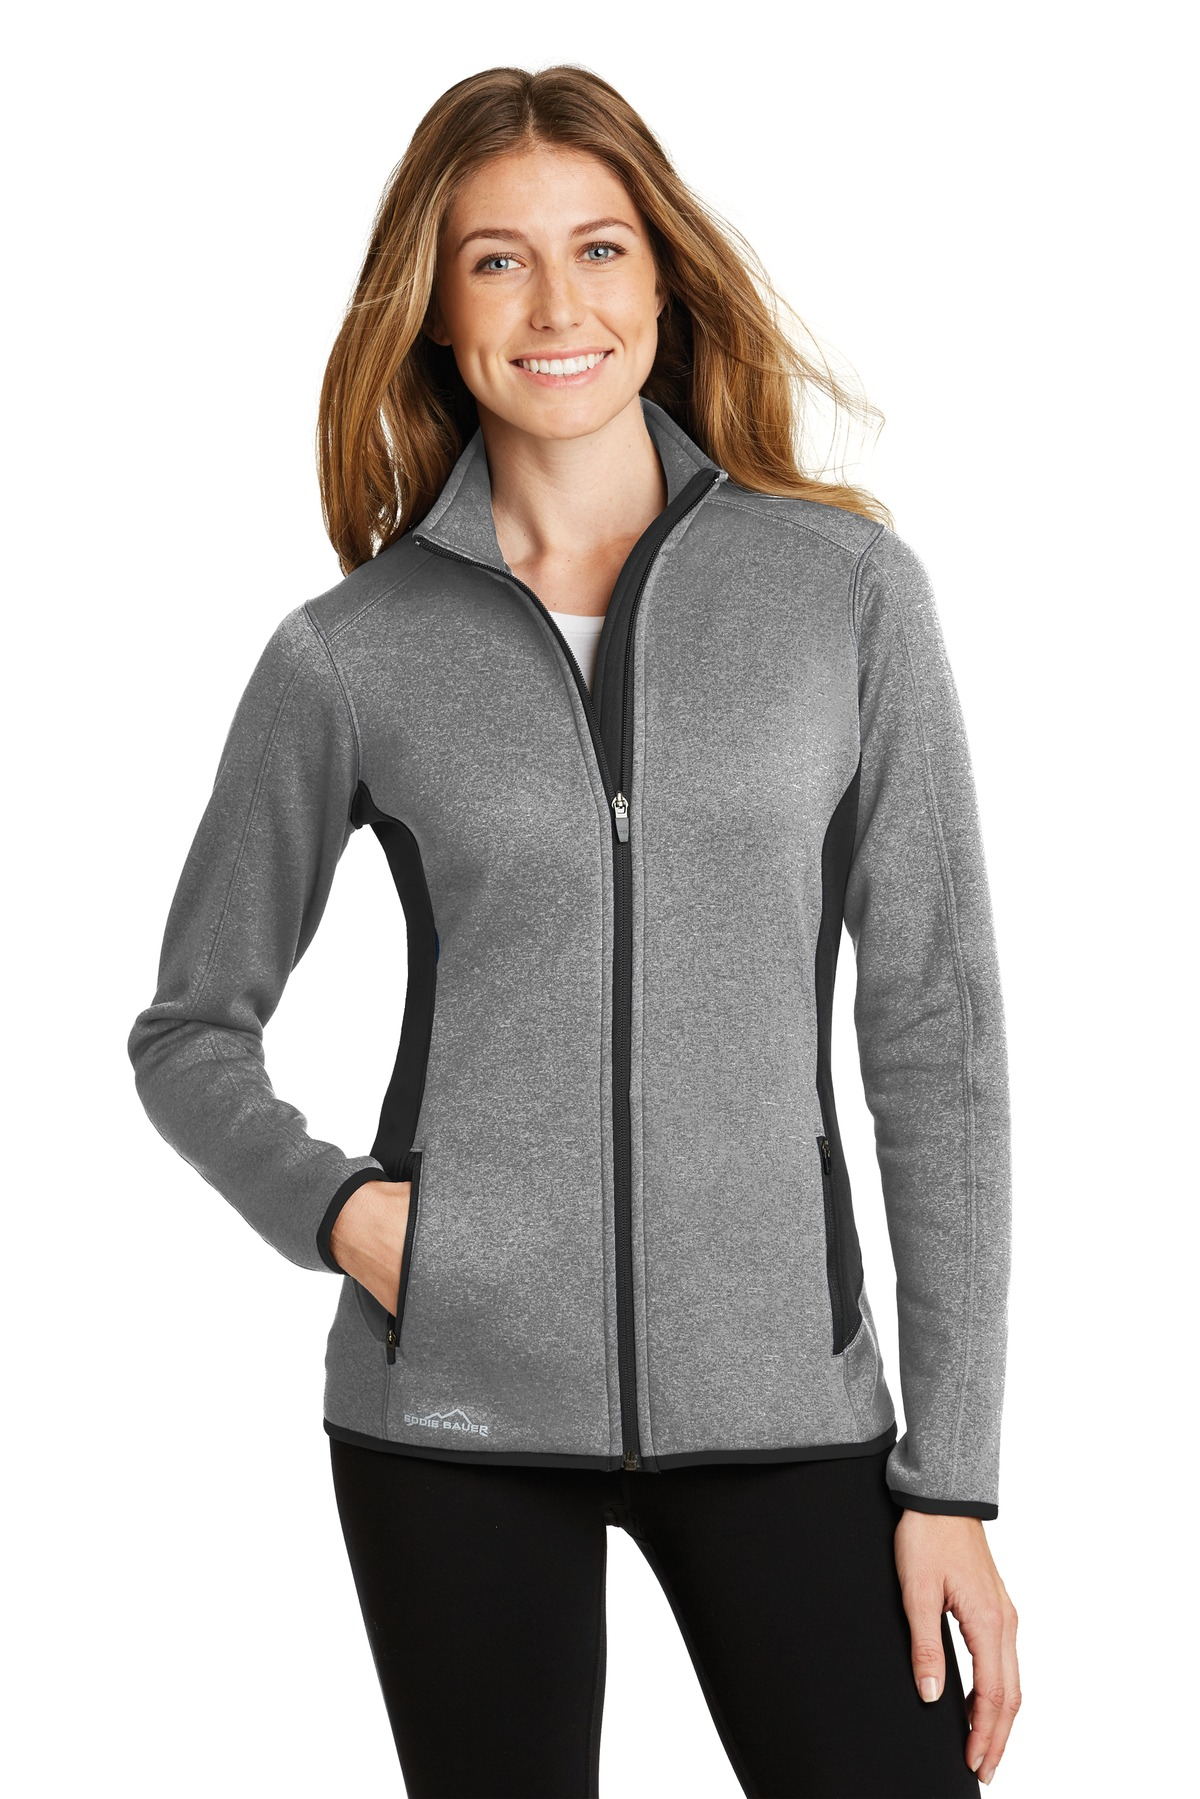 Eddie Bauer Ladies Full-Zip Heather Stretch Fleece Jacket. EB239